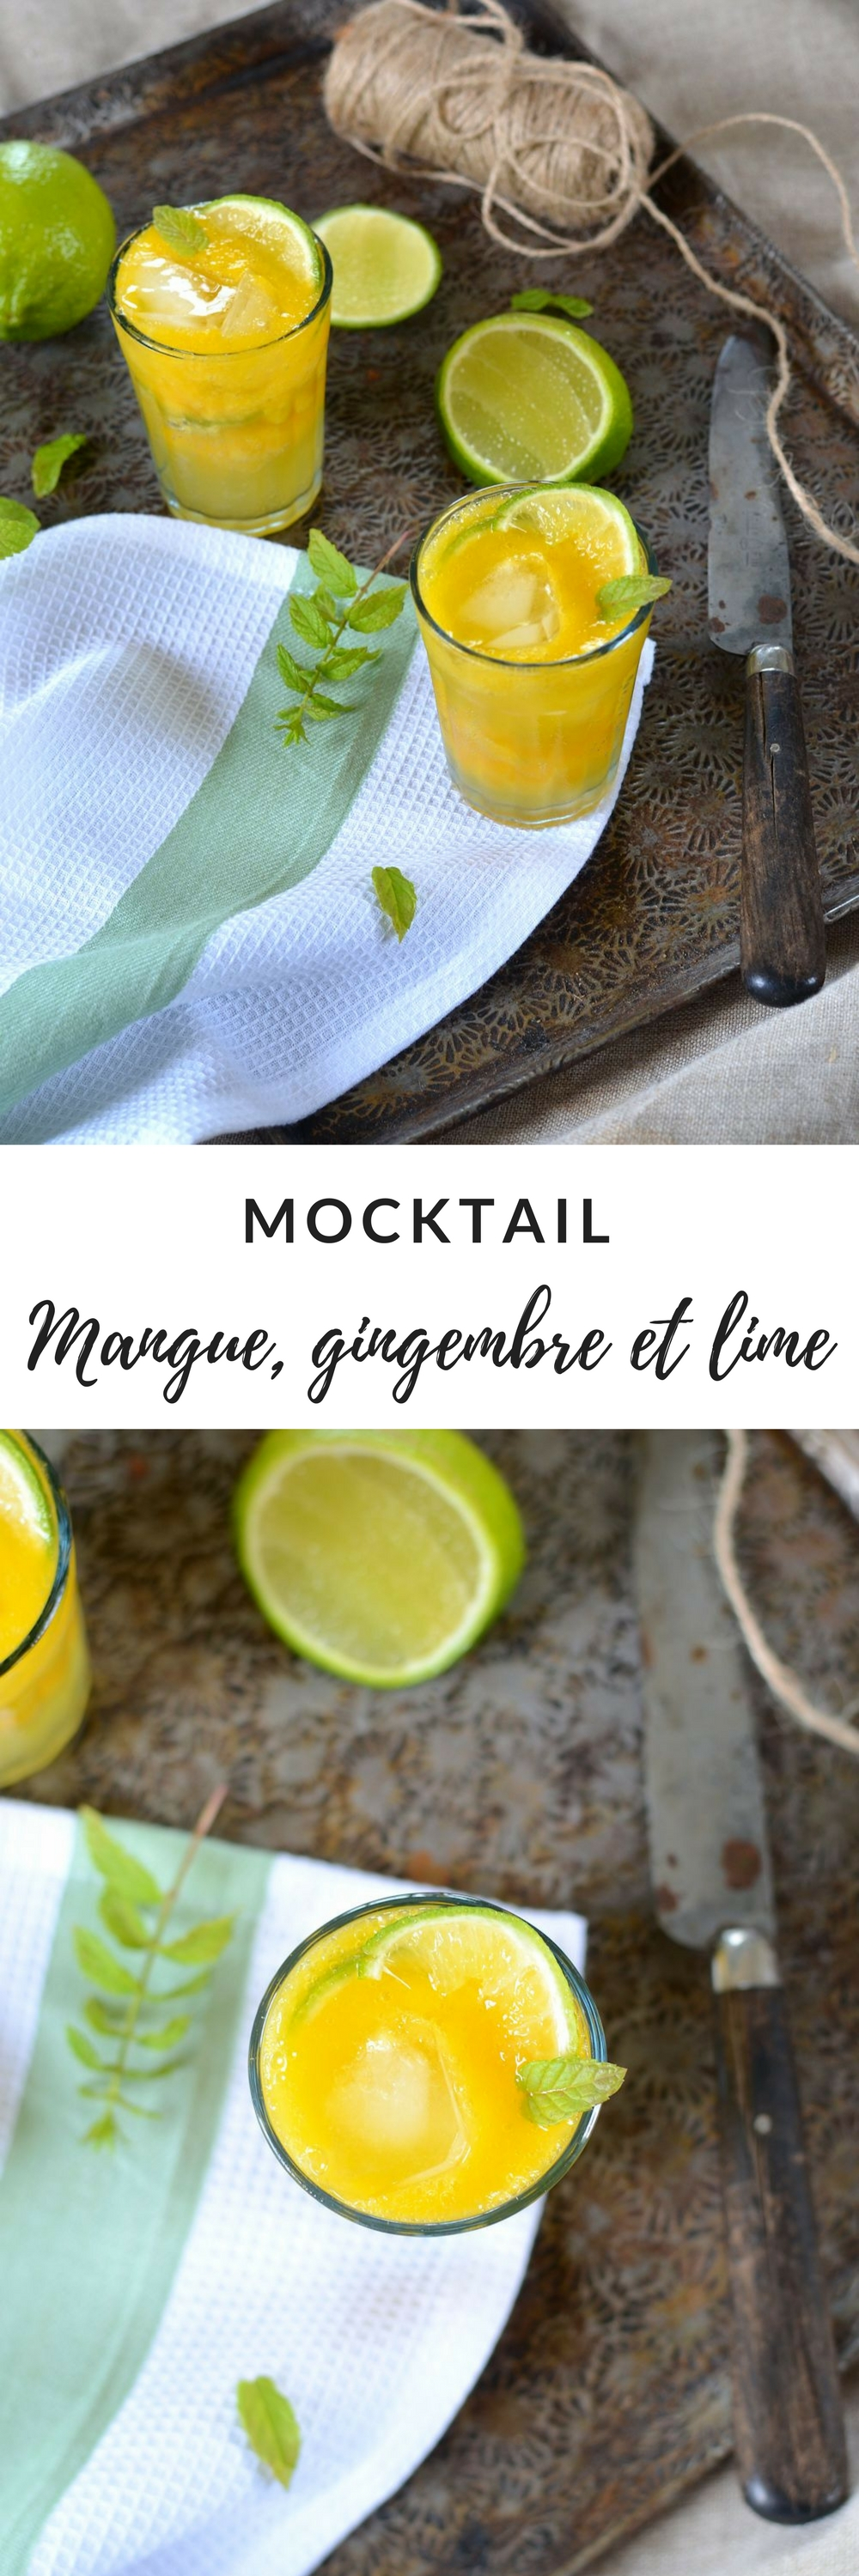 mocktail mangue gingembre lime